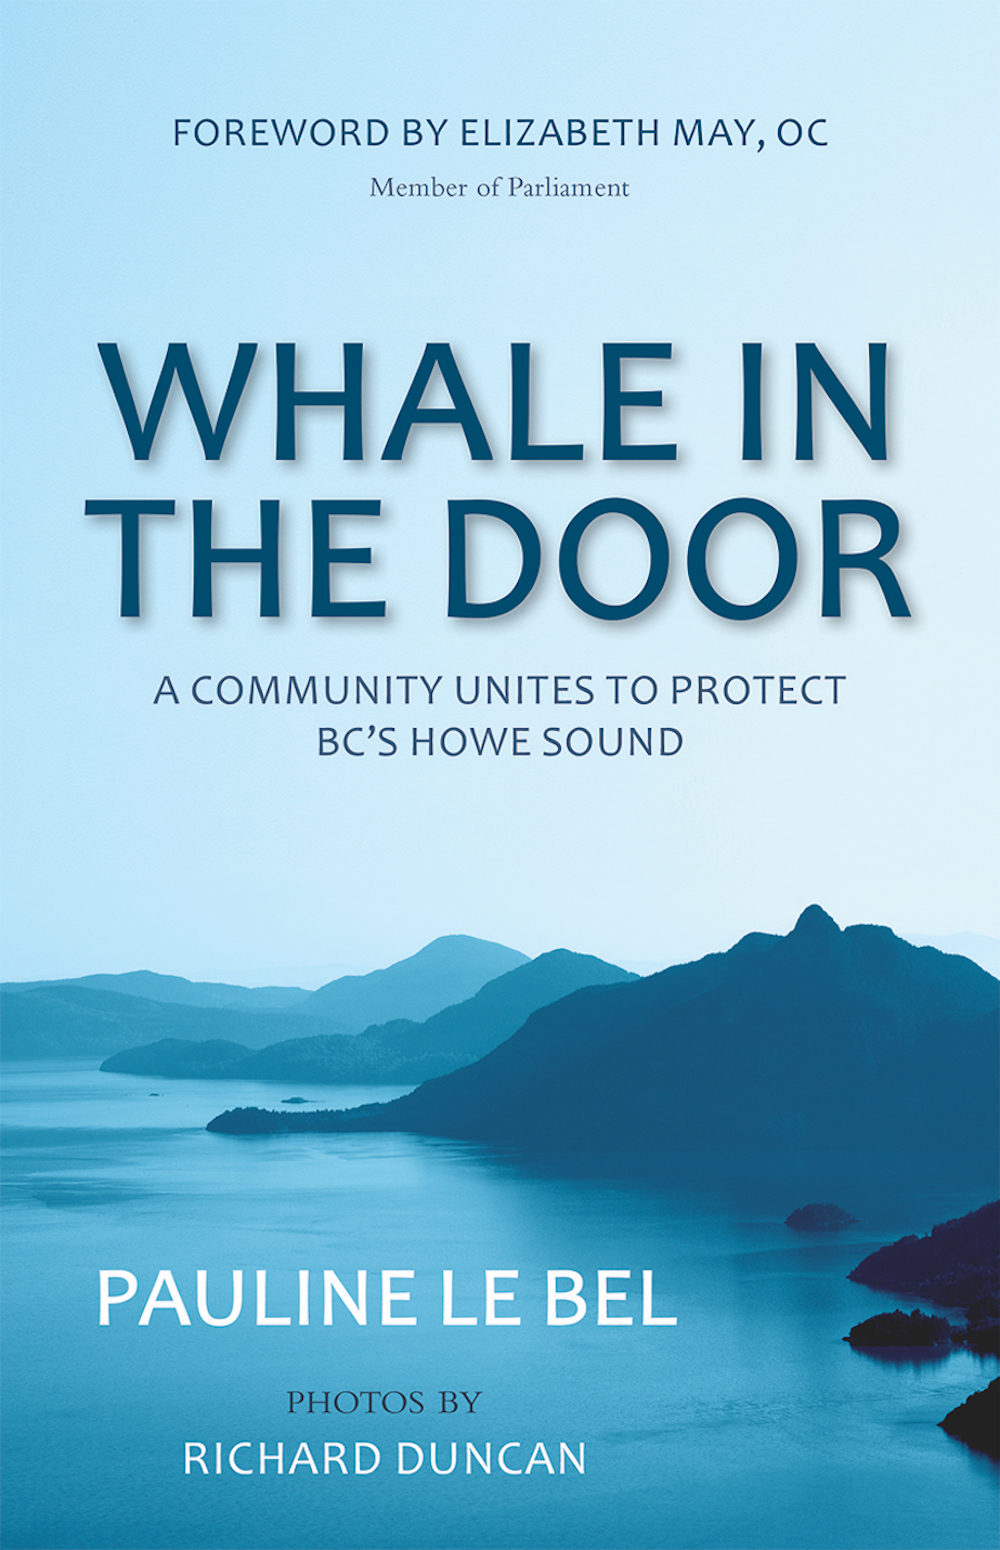 Whale in the Door